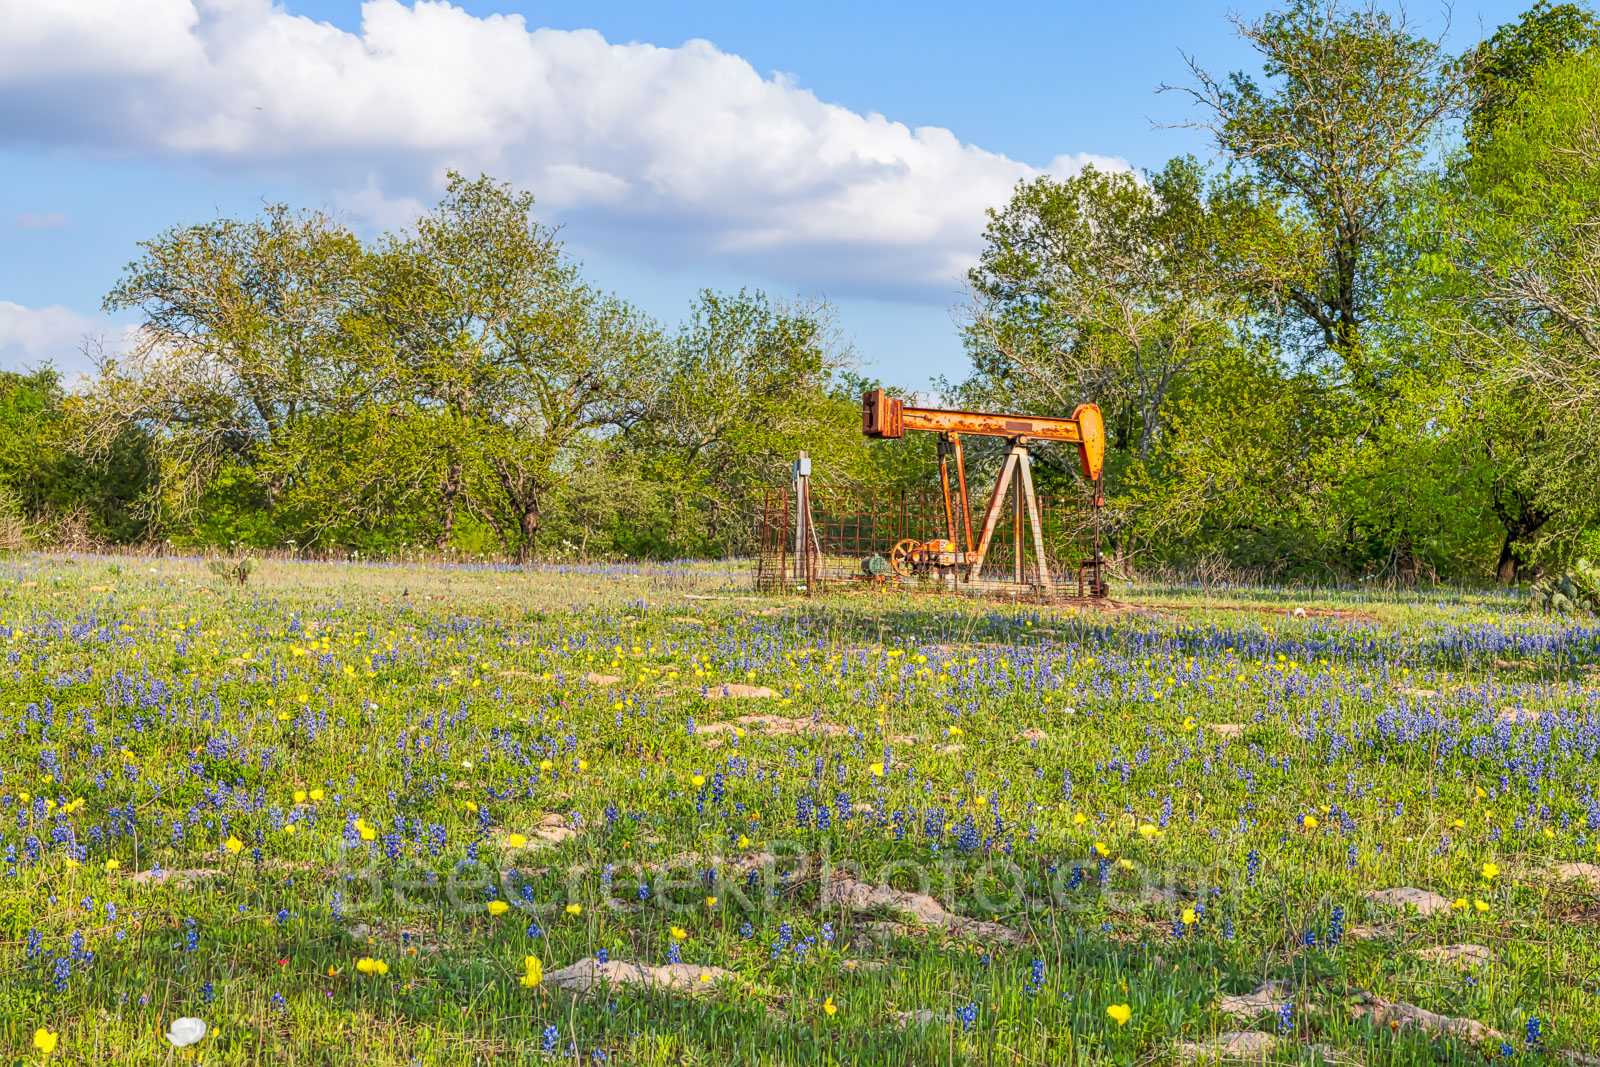 bluebonnets, butter cup, yellow, oil derrick, oil well pumper, wildflowers, San Antonio, pumpers, industrial, Texas wildflowers, images of texas, texas industrial, oil rig,, photo